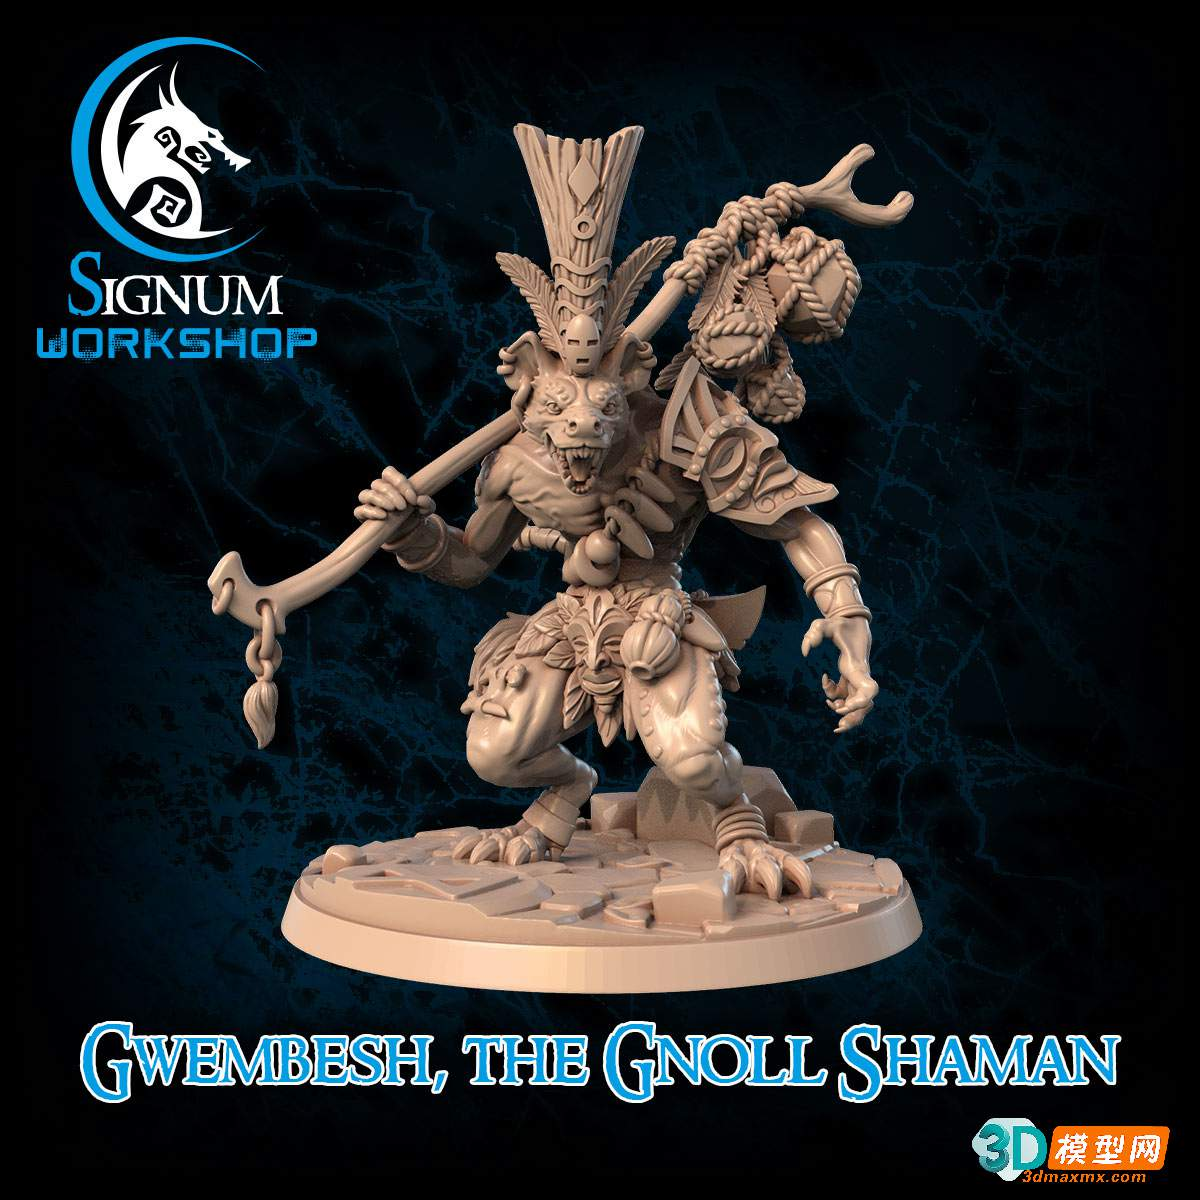 gwembesh the gnoll shaman + Pre supports插图